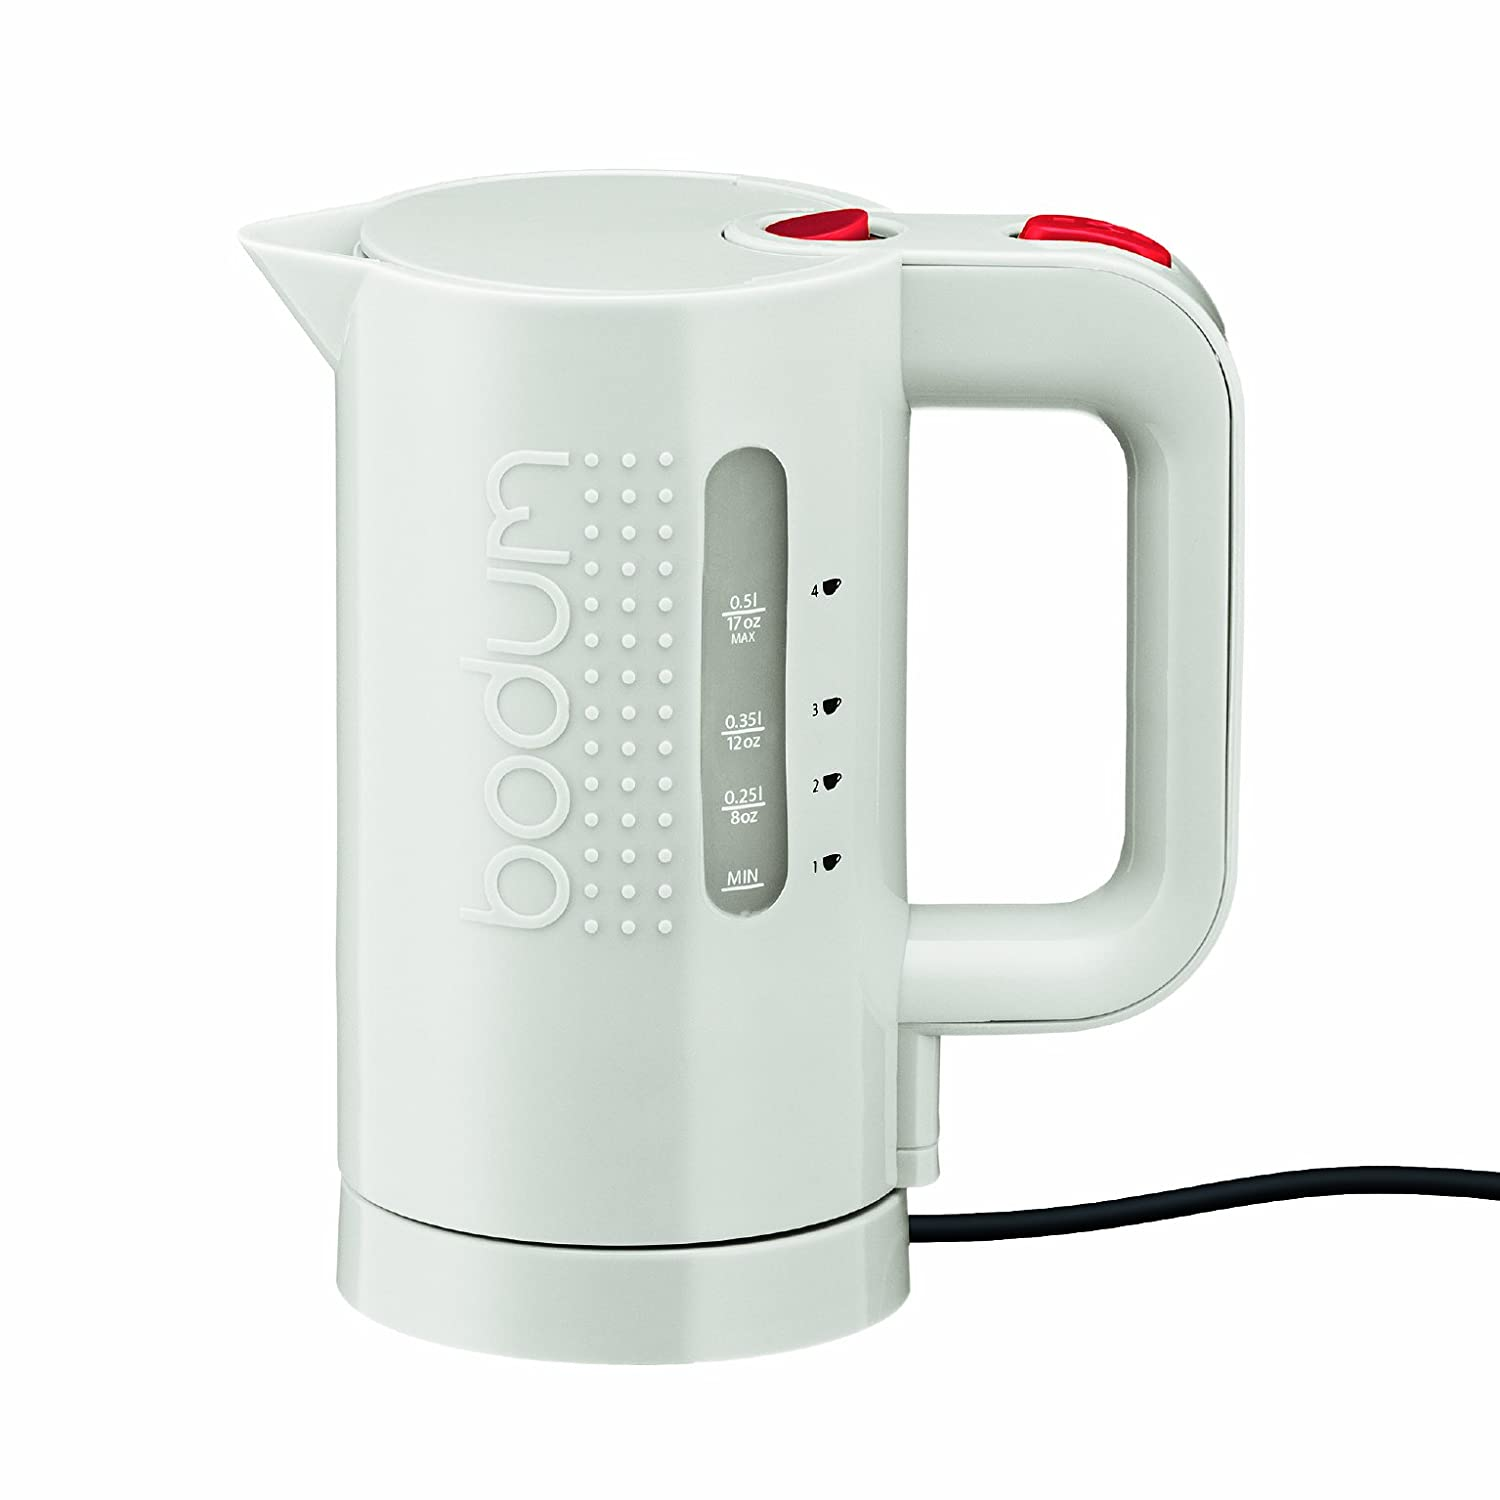 Bodum Bistro Electric Water Kettle, 17 Ounce, .5 Liter, White